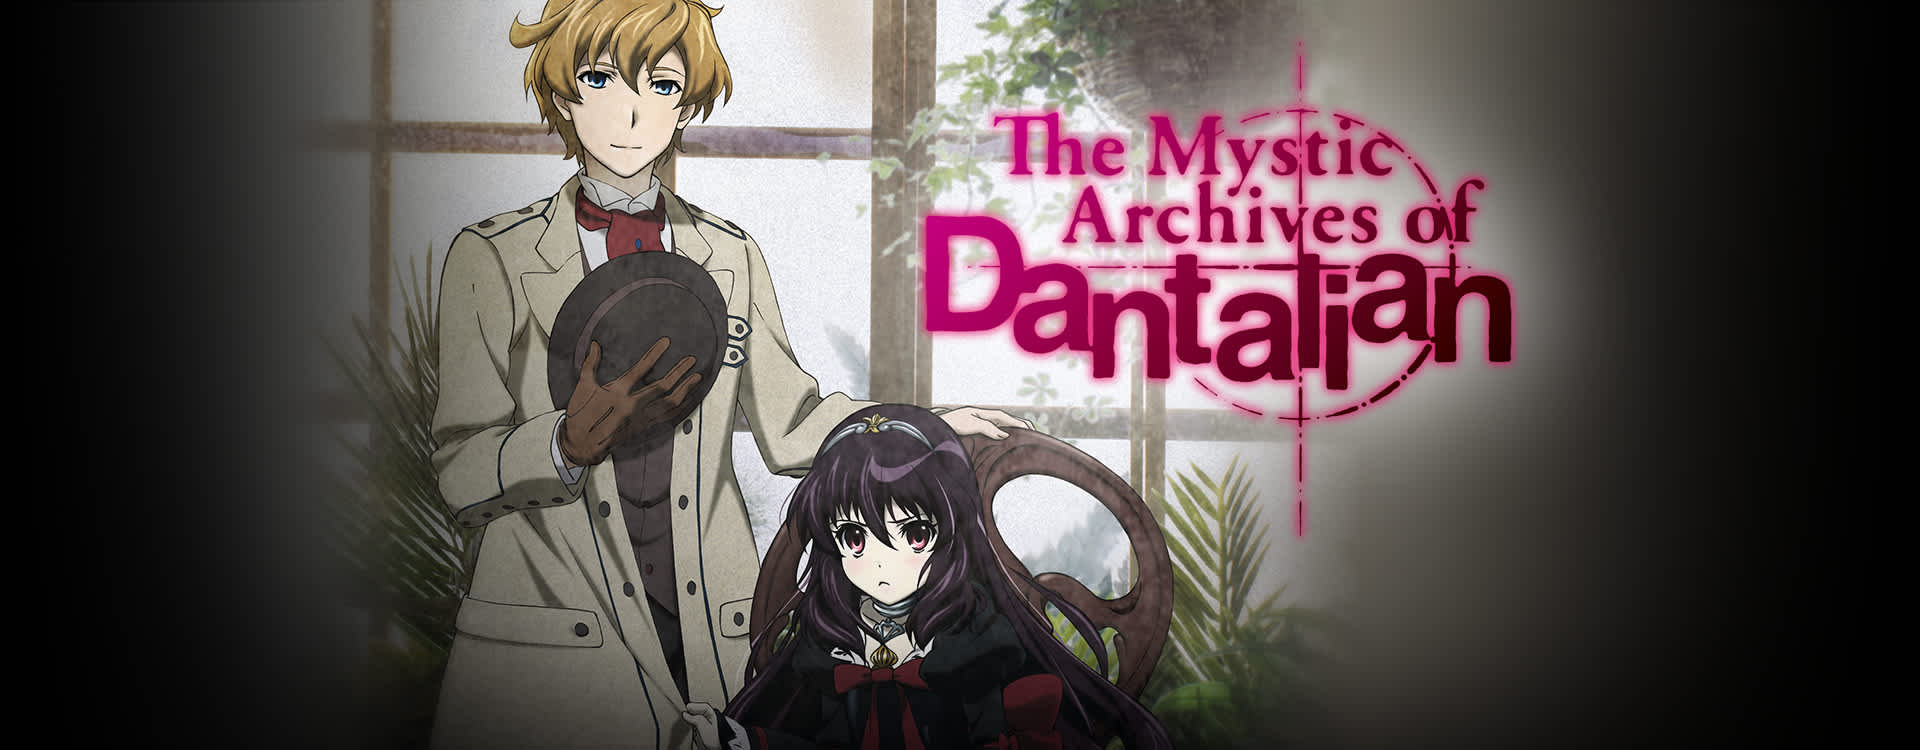 Watch The Mystic Archives Of Dantalian Episodes Sub & Dub